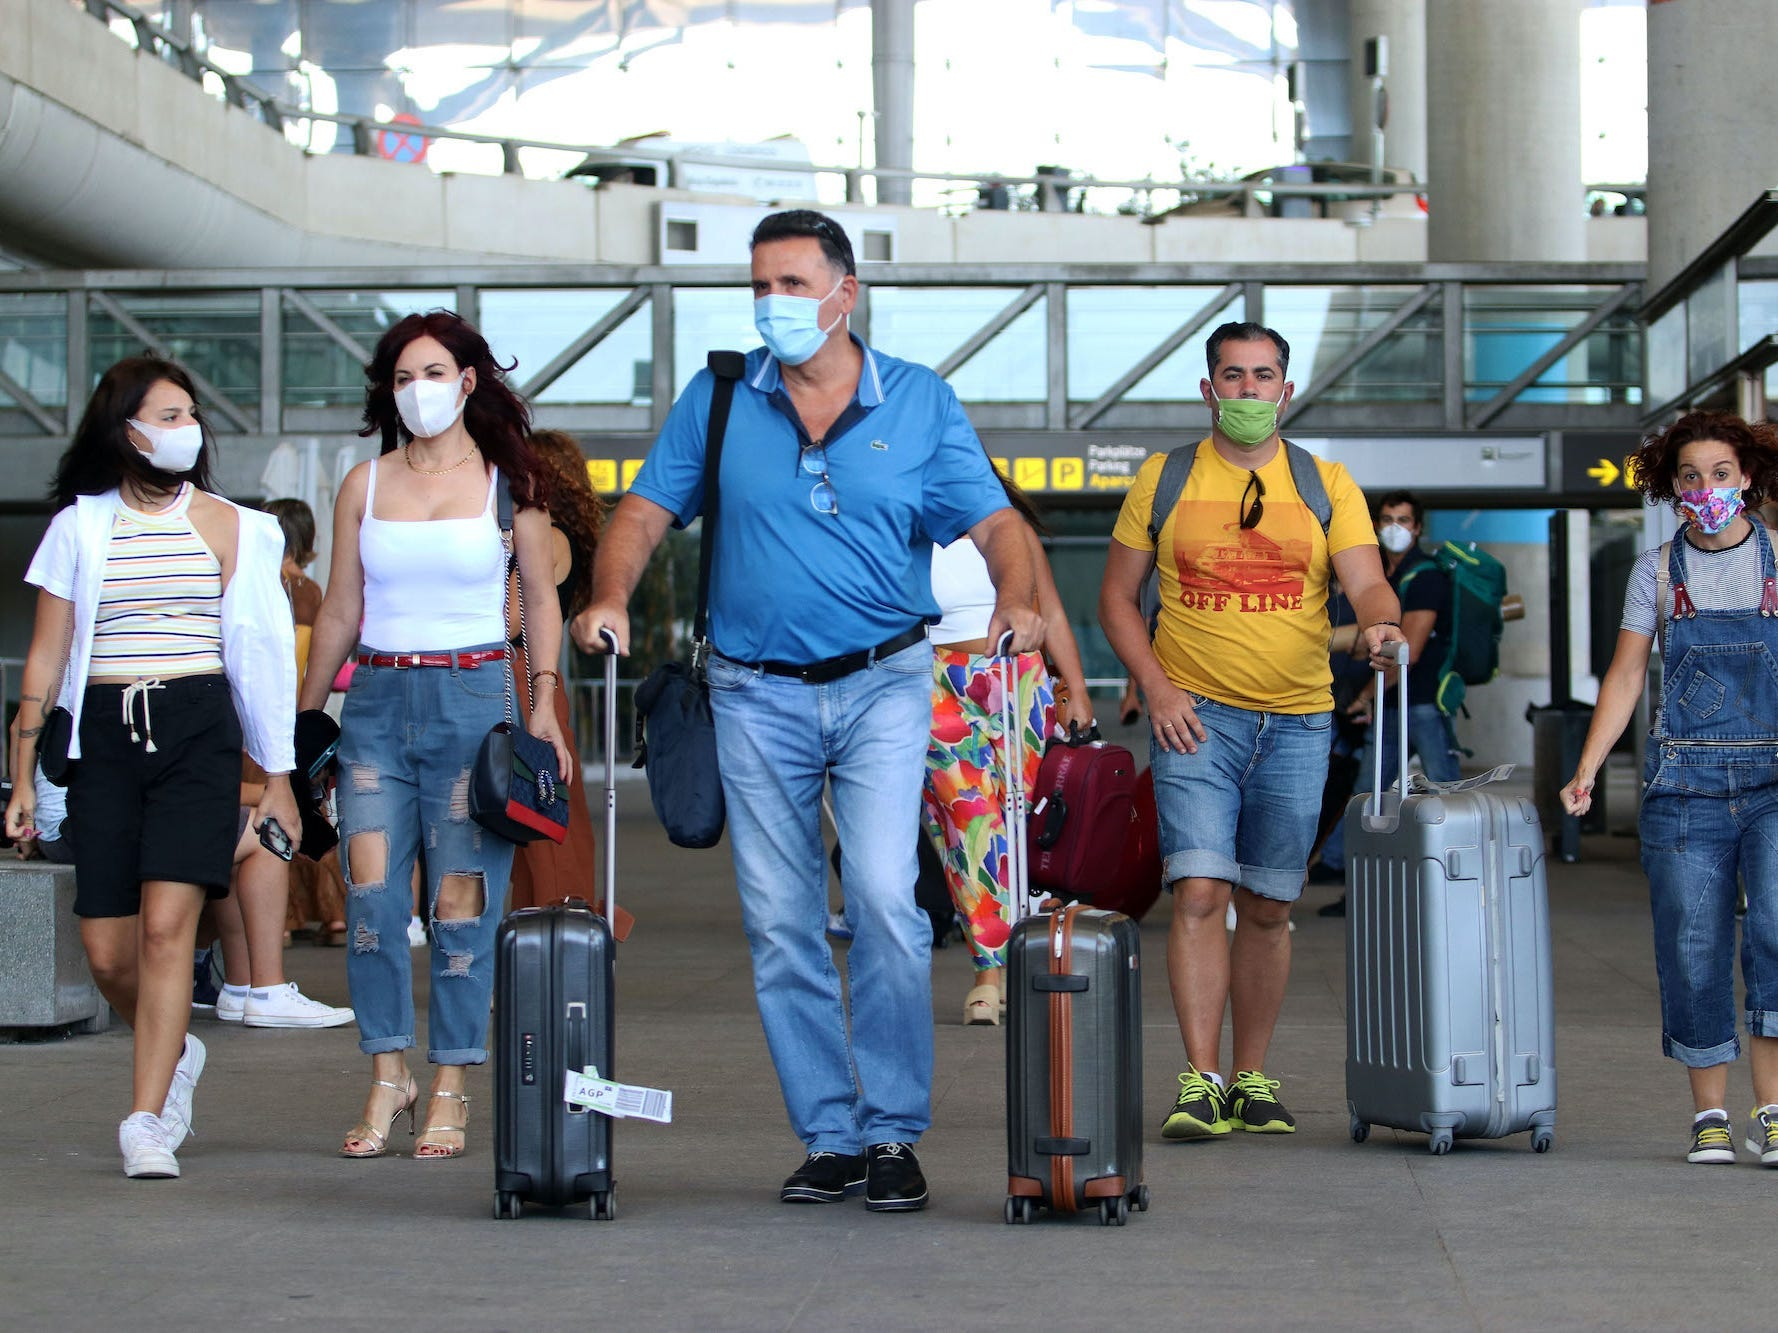 Scientists say that a mutant strain of COVID-19 is causing most of the new infections in Europe and has spread across the continent by tourists.